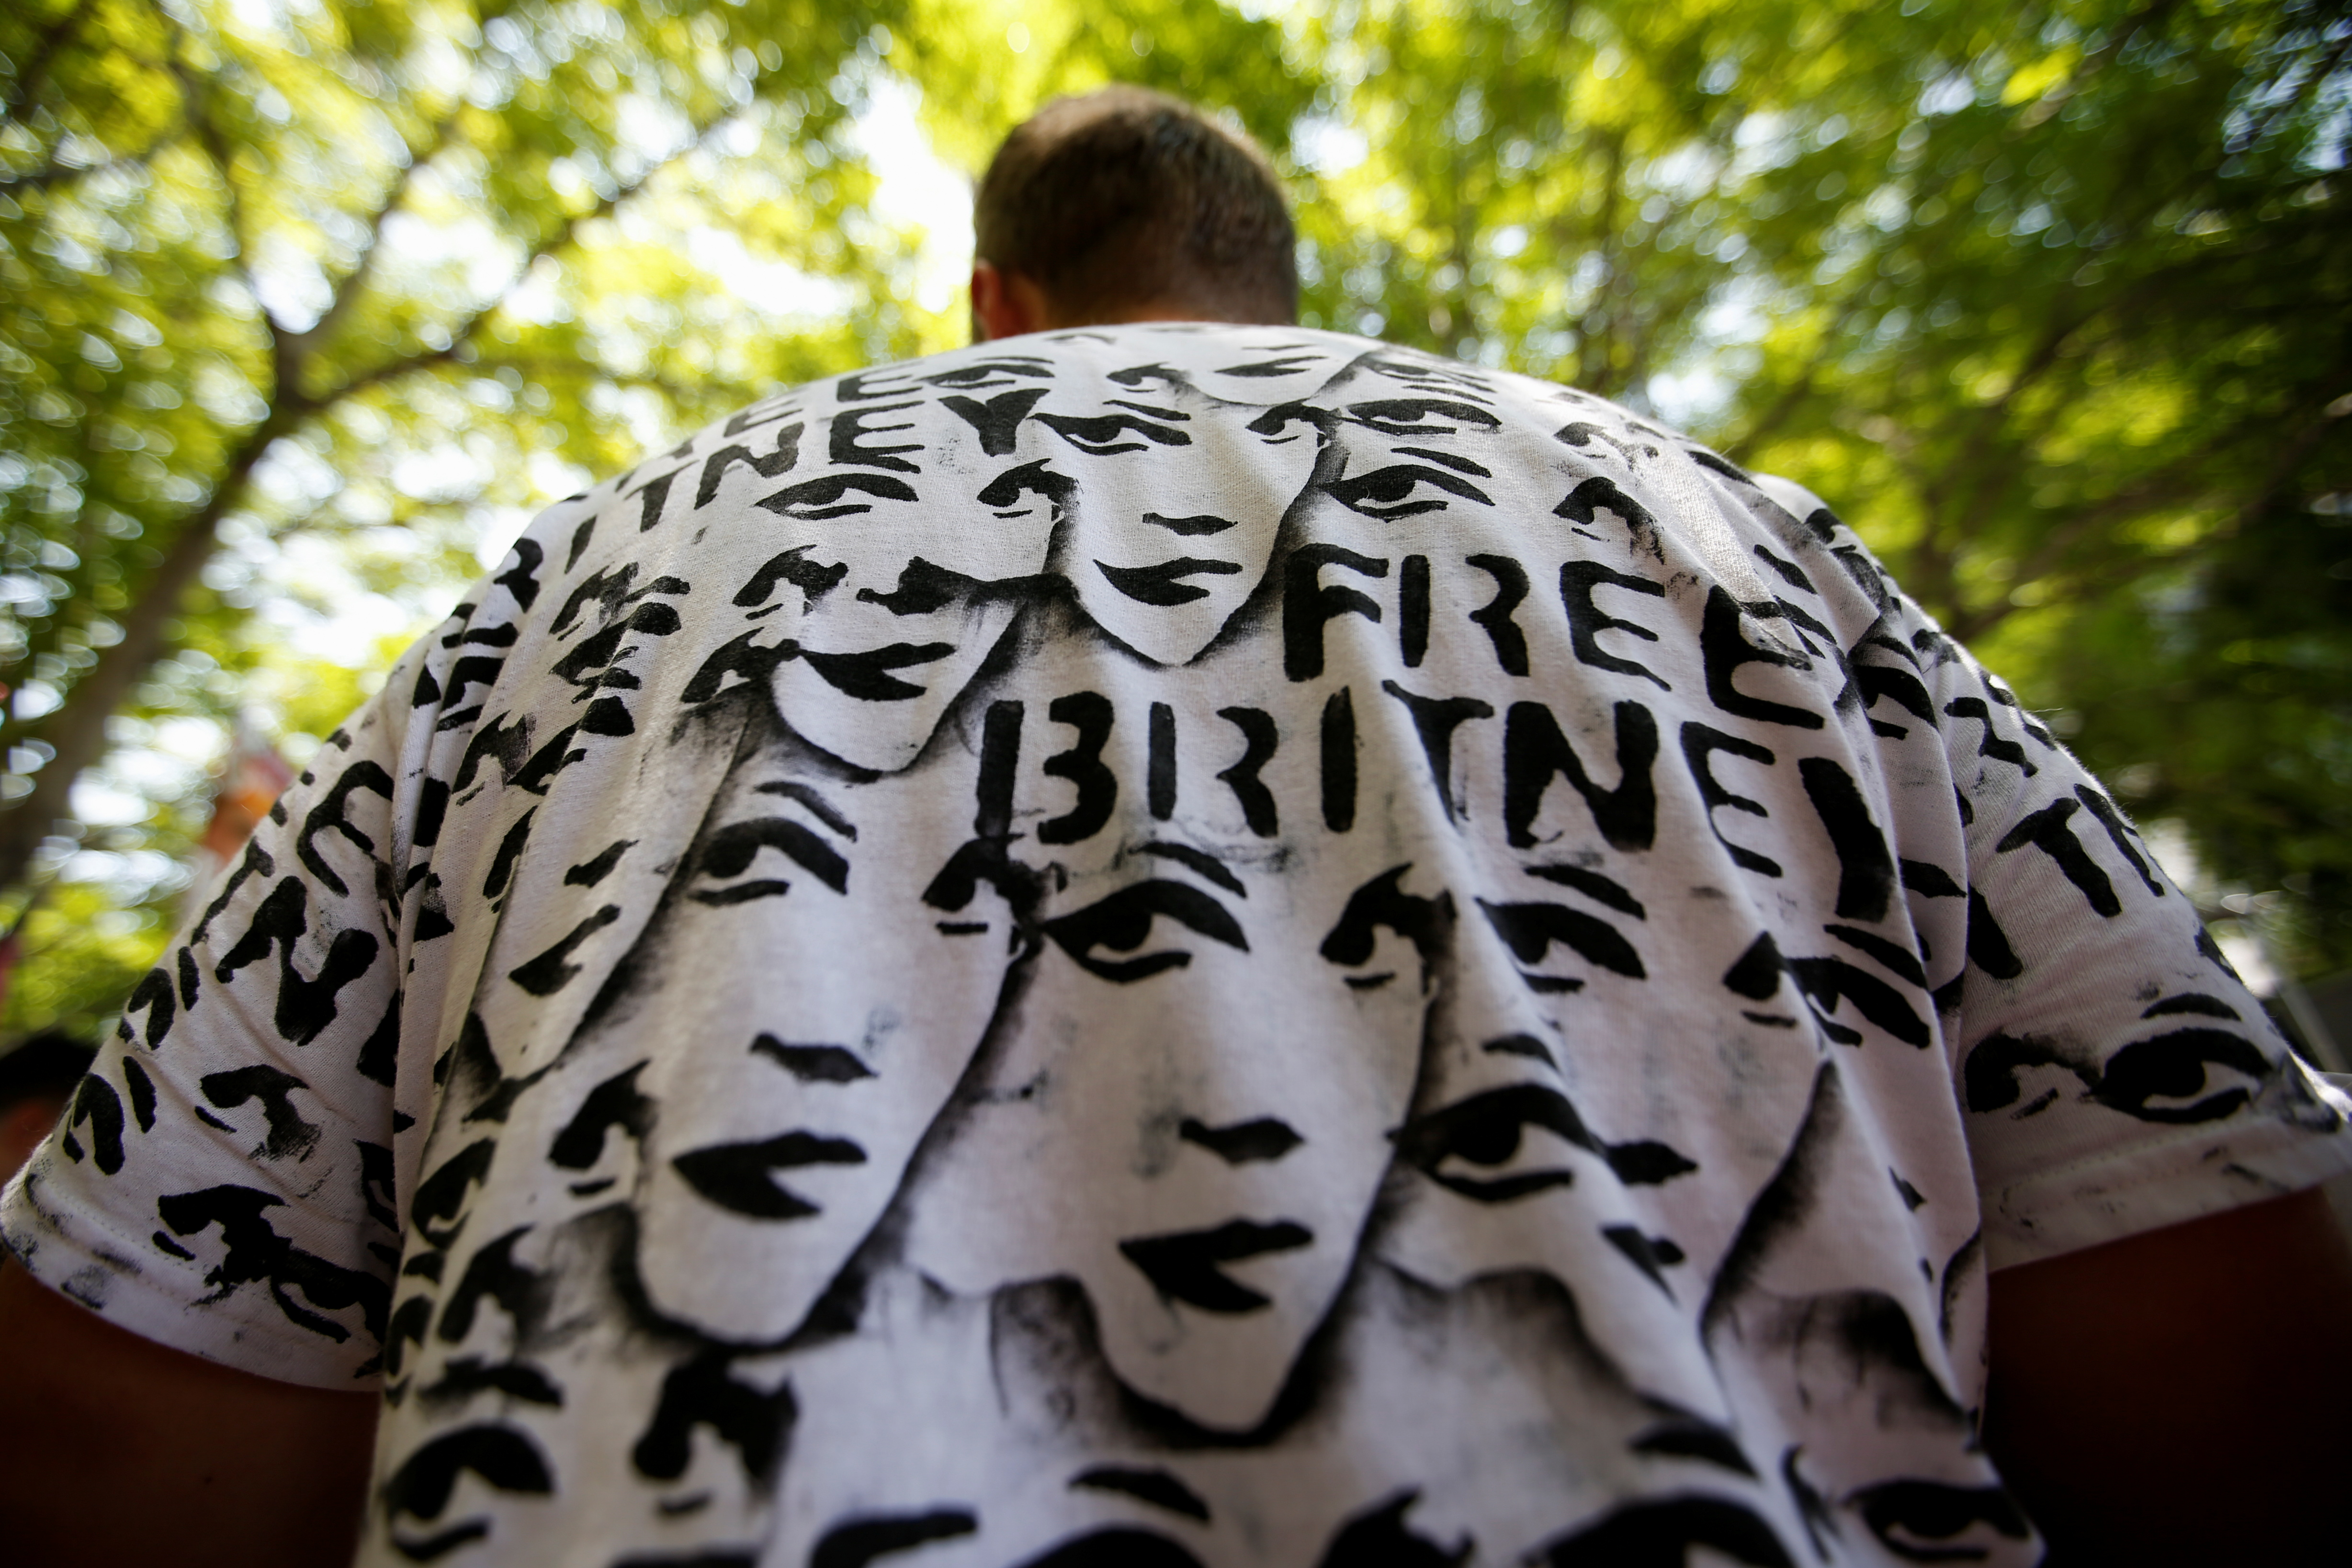 A demonstrator takes part in a protest in support of pop star Britney Spears on the day of a conservatorship case hearing at Stanley Mosk Courthouse in Los Angeles, California, U.S., July 14, 2021.  REUTERS/Mario Anzuoni